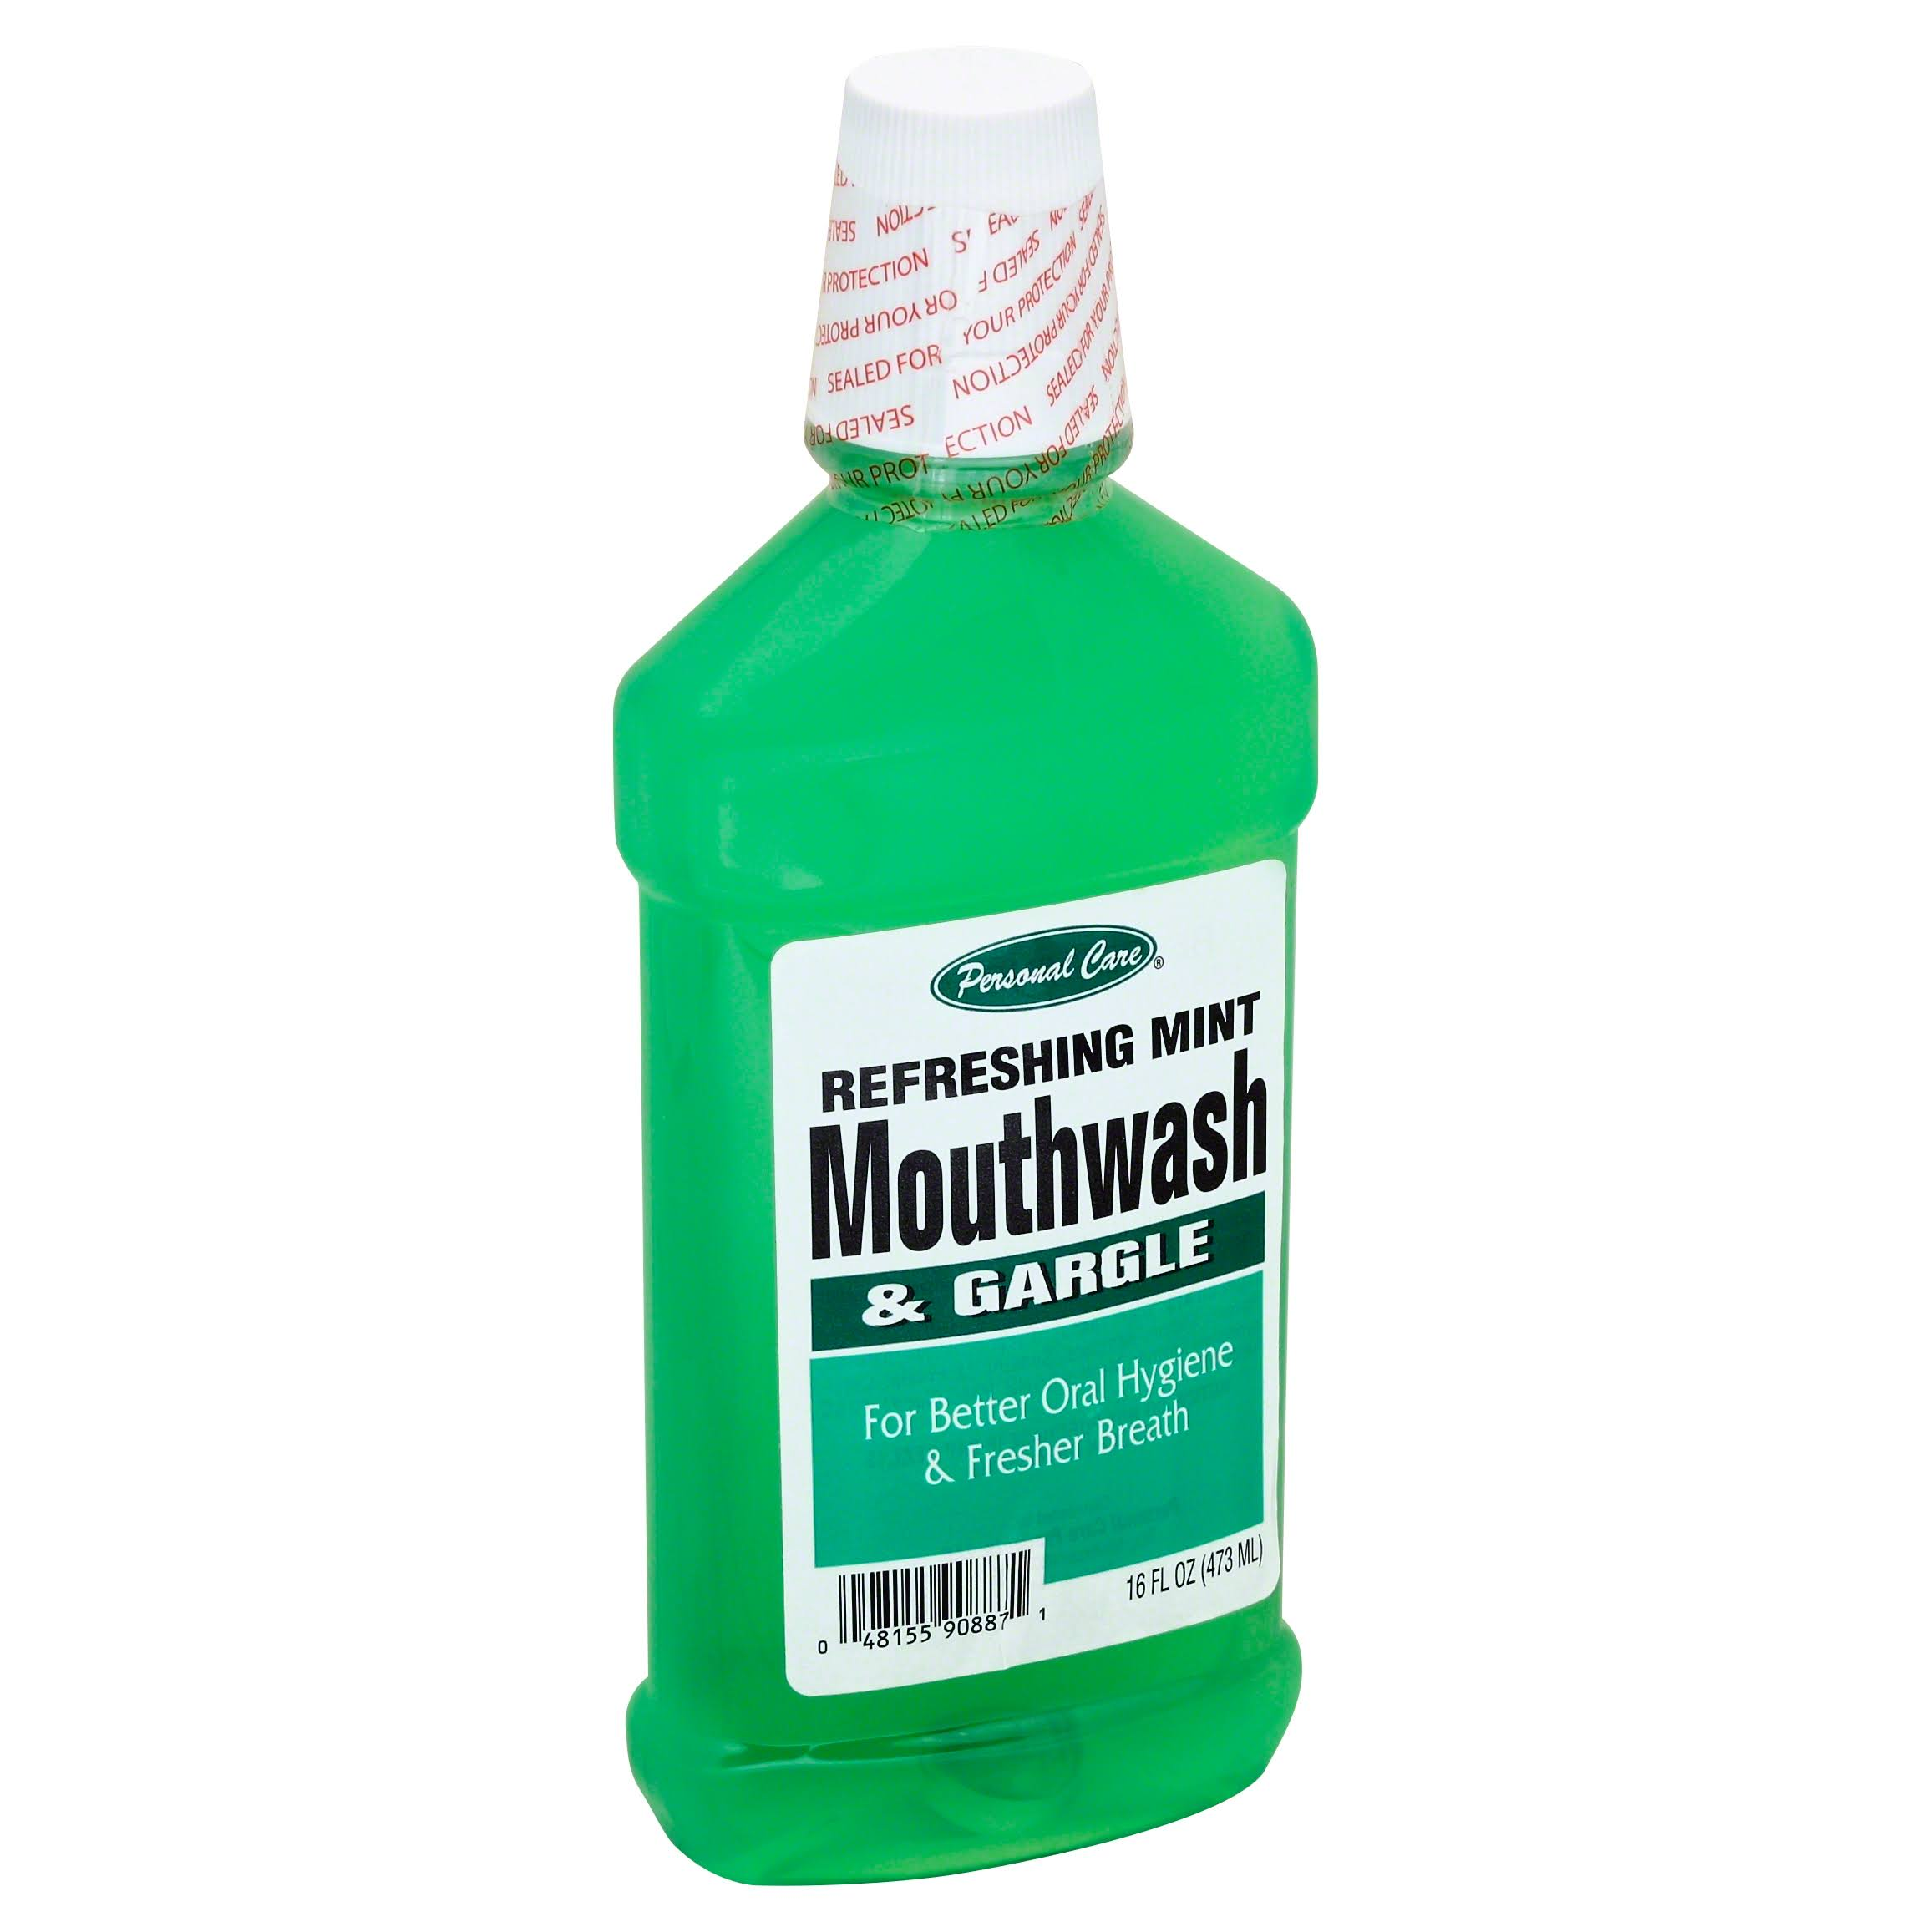 Personal Care Mouthwash - Refreshing Mint, 470ml